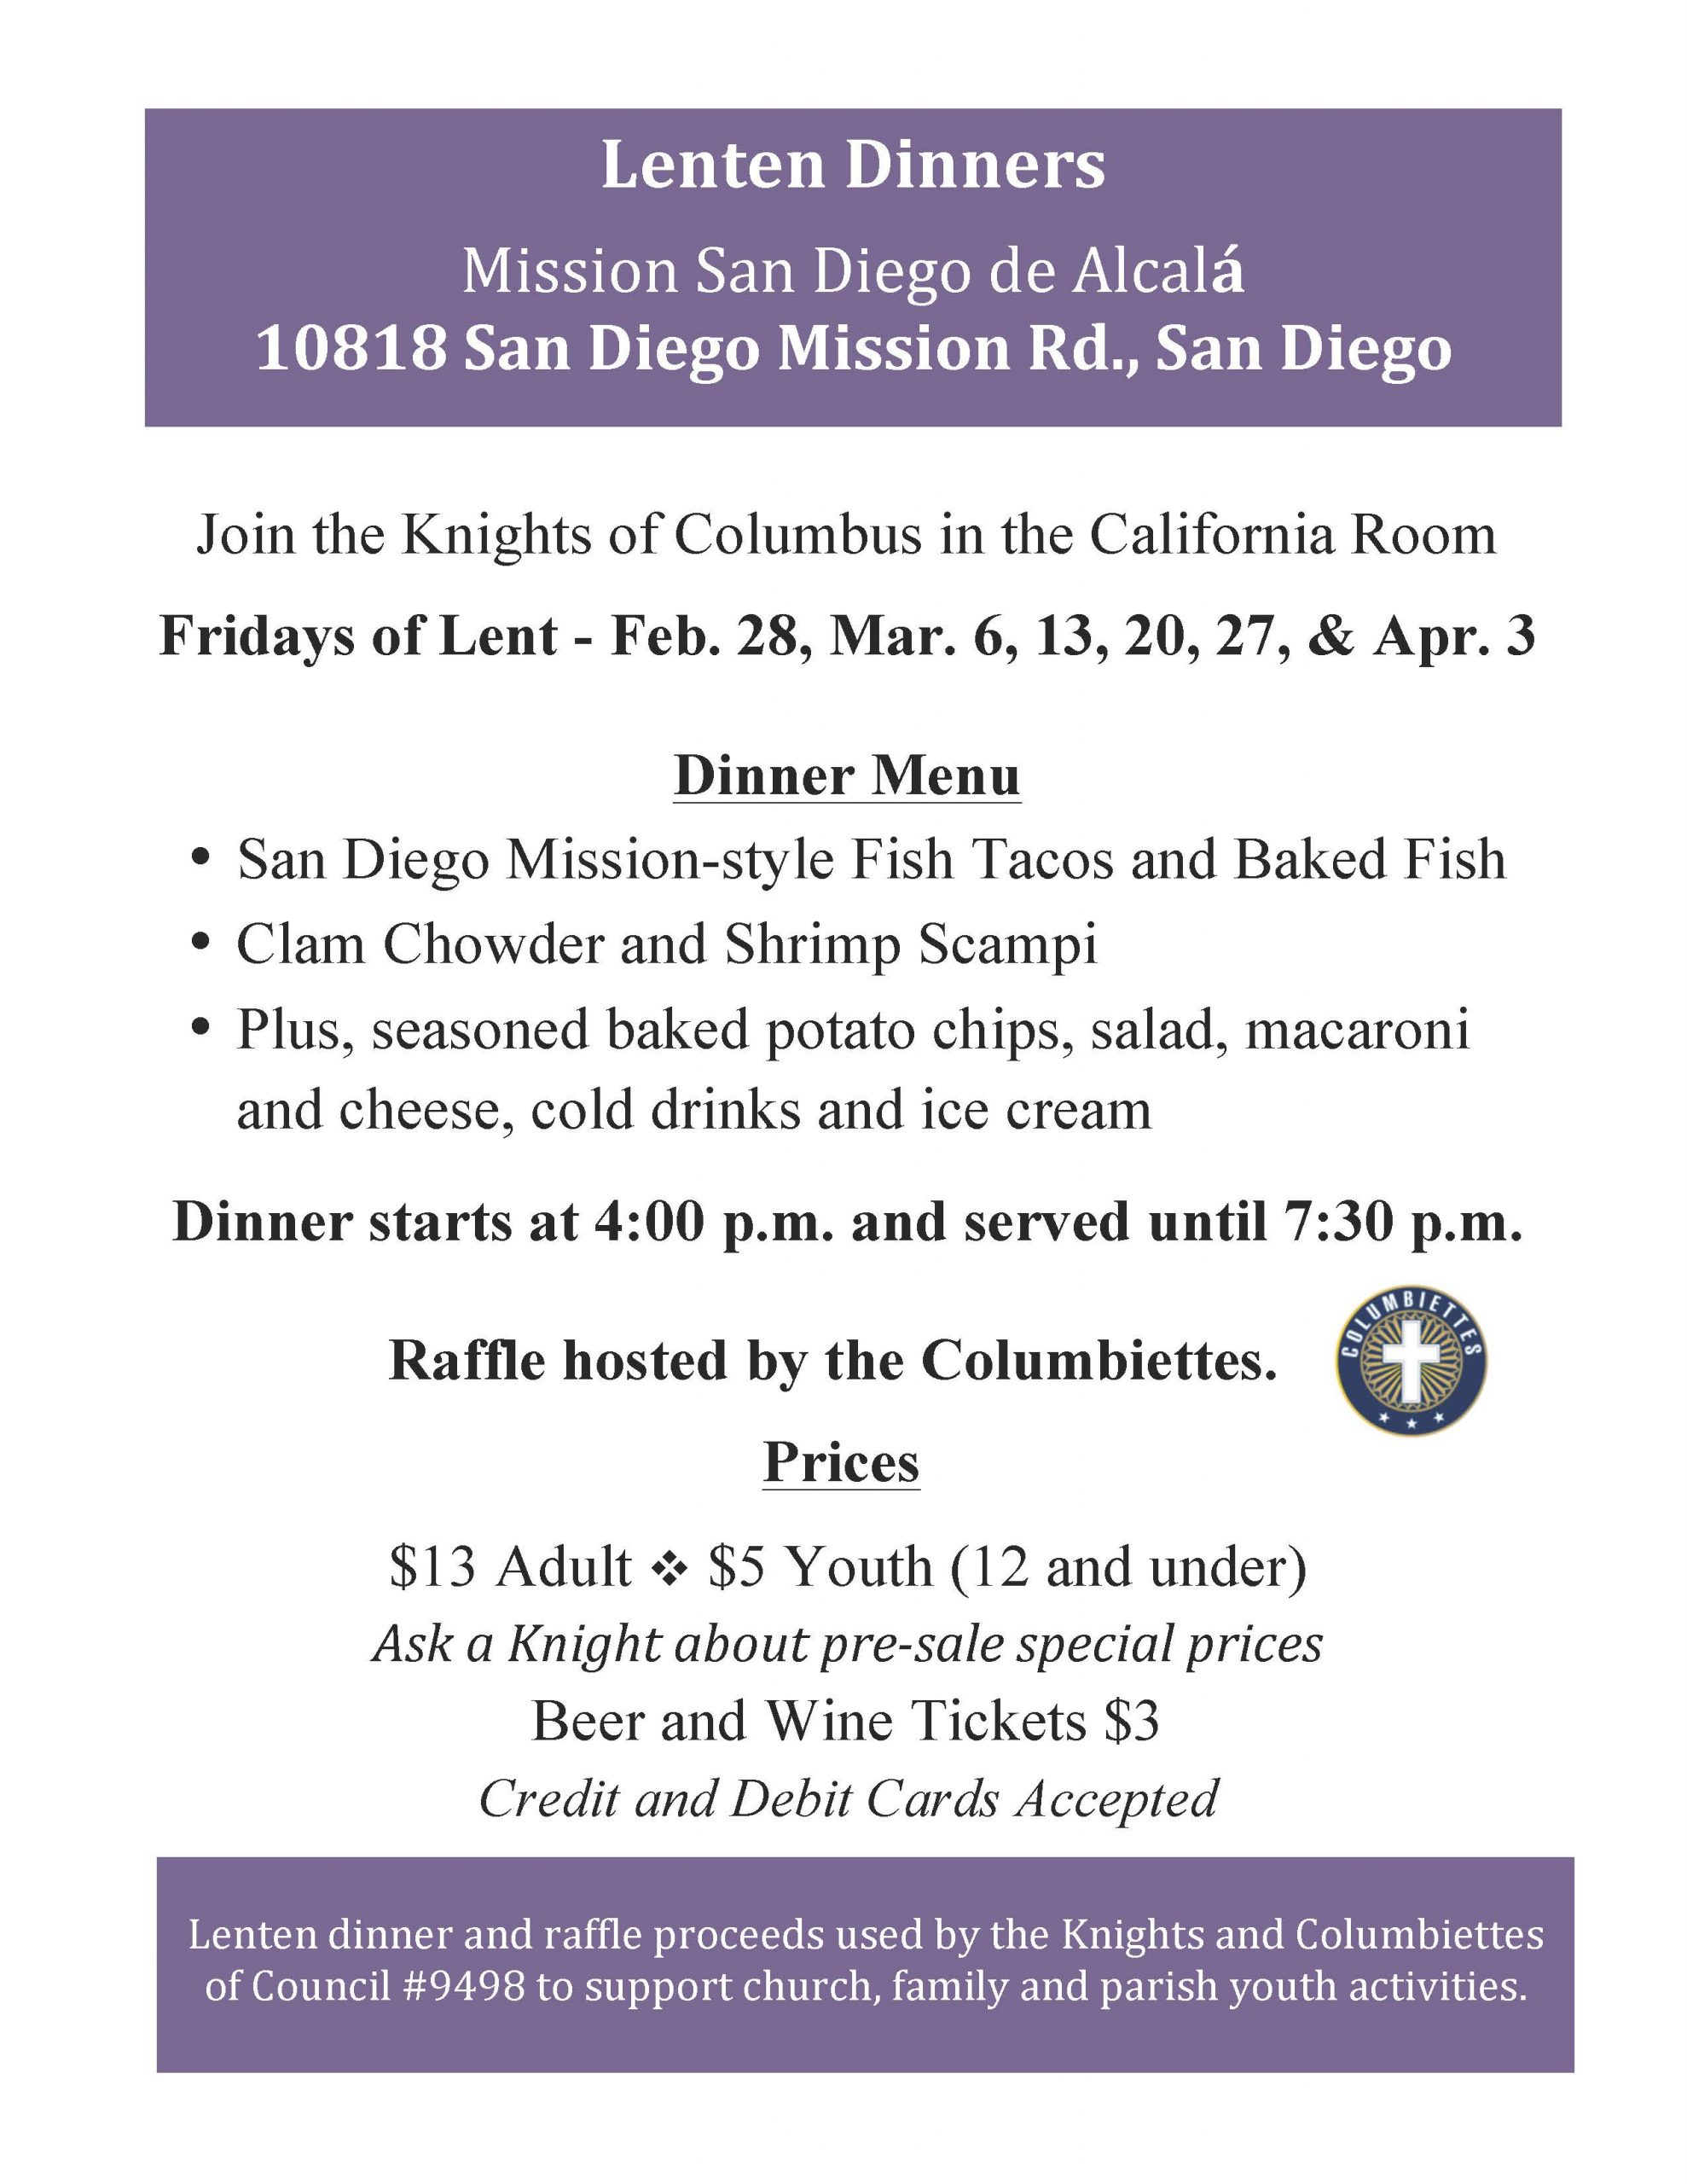 Knights of Columbus Fridays of Lent Dinners